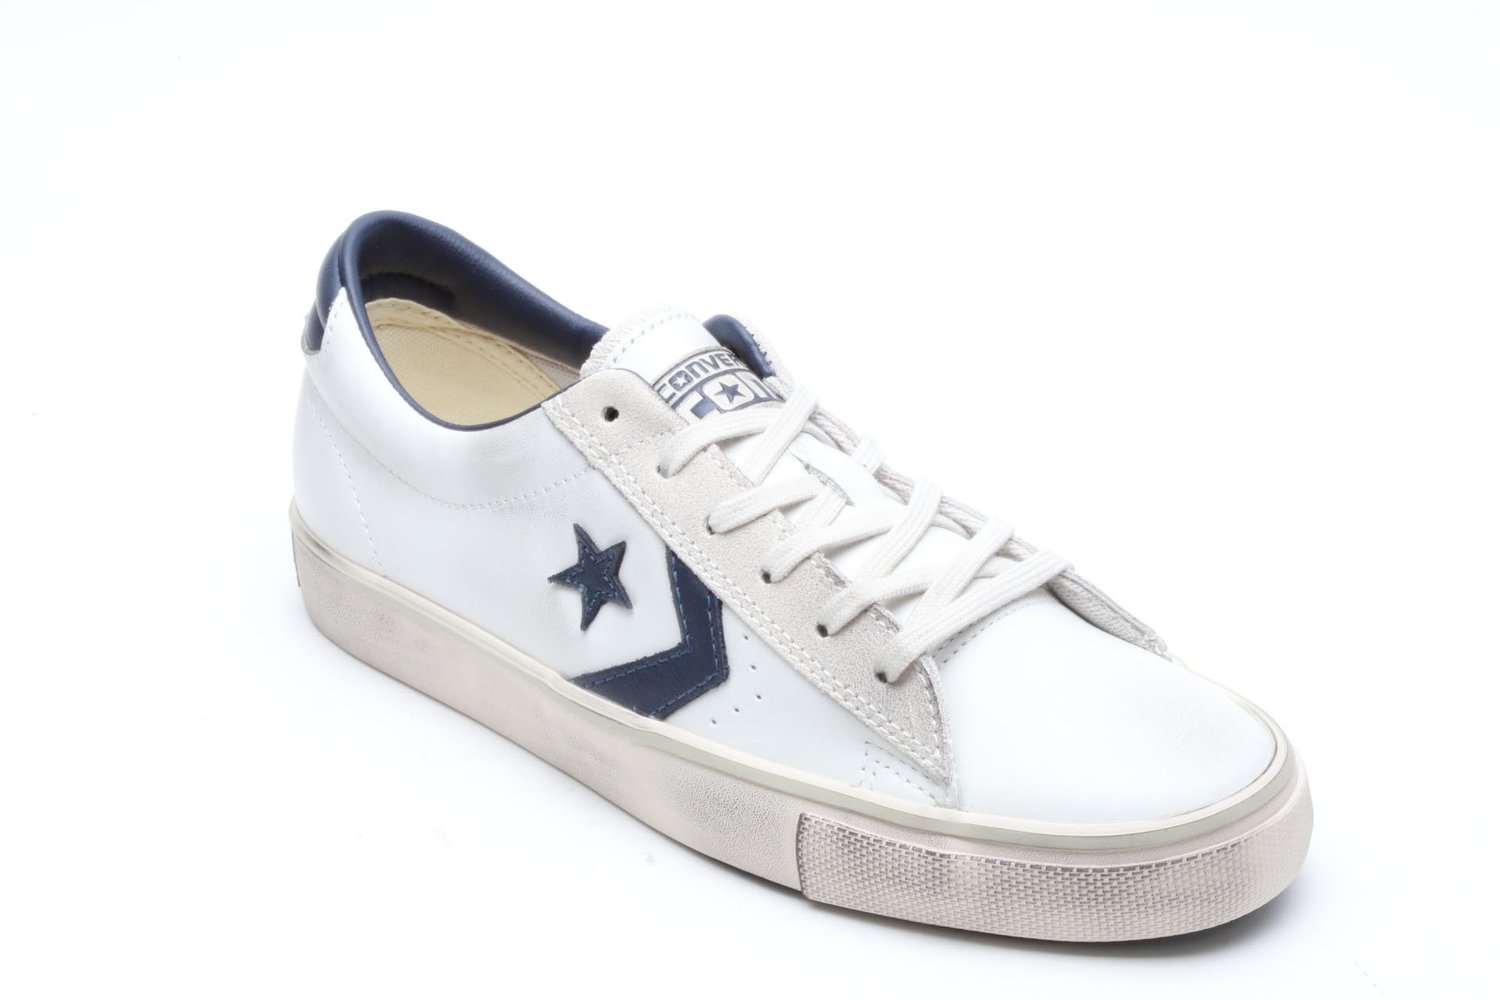 3377a29e08 Amazon.com: CONVERSE Pro Leather Vulc Ox sneakers LEATHER WHITE NAVY  148457C: Shoes